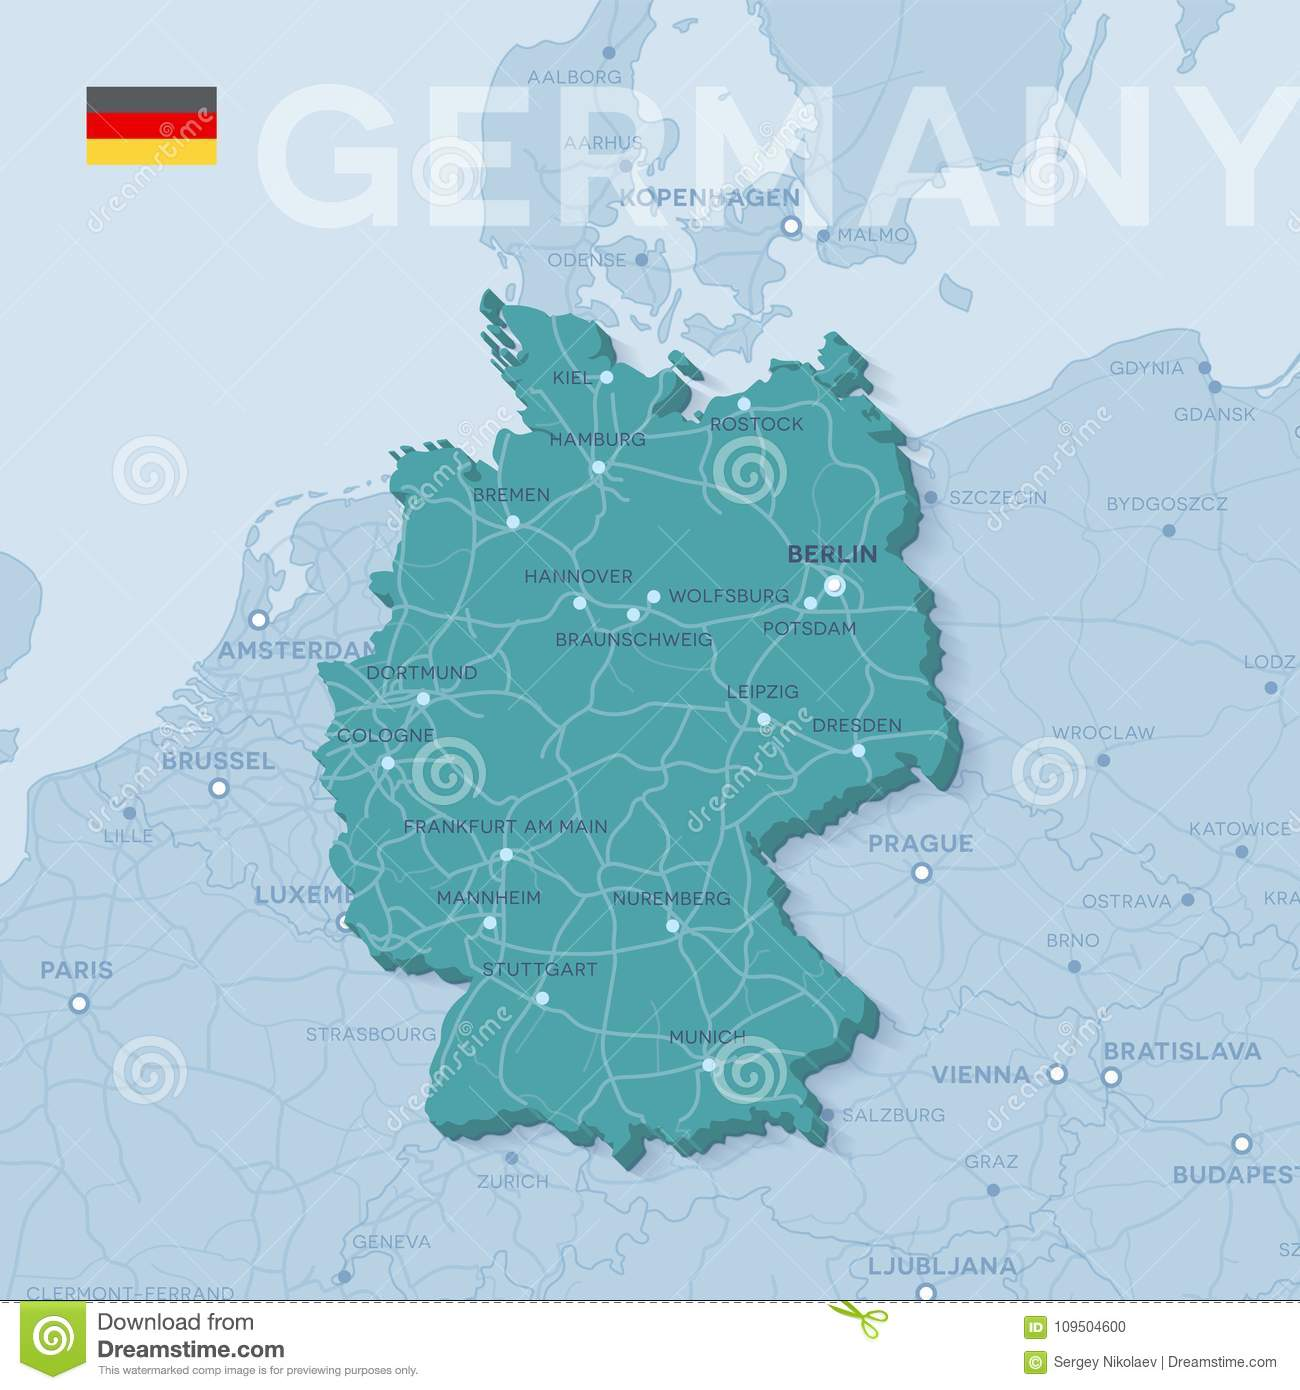 Europe Political Map With Cities.Map Of Cities And Roads In Germany Stock Vector Illustration Of